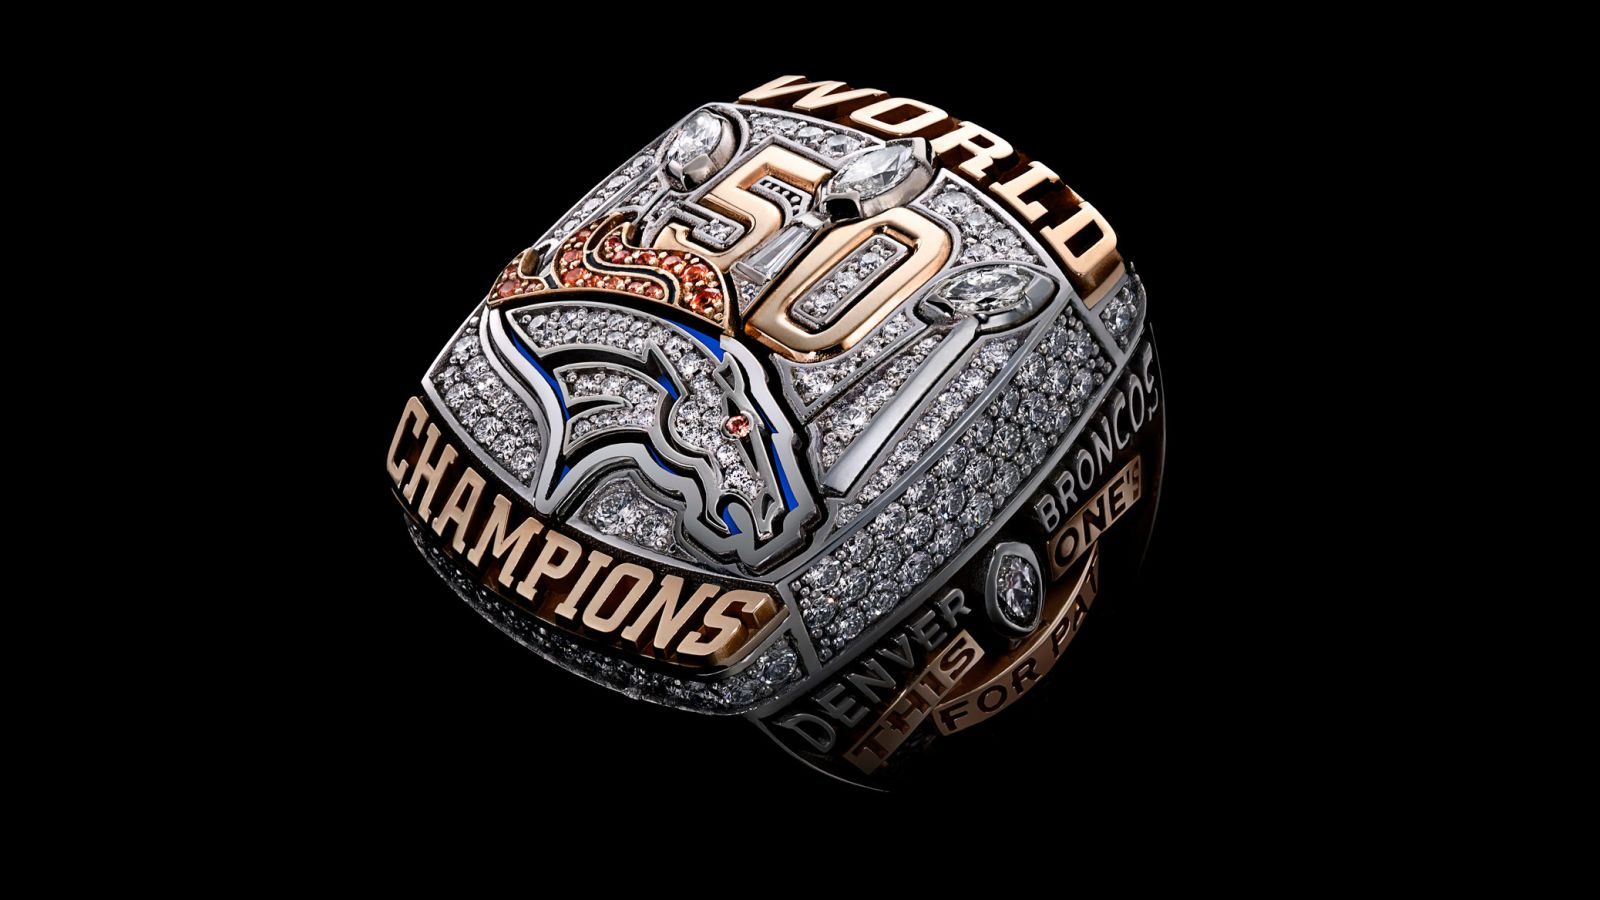 2015 Denver Broncos Super Bowl Miller Championship Ring